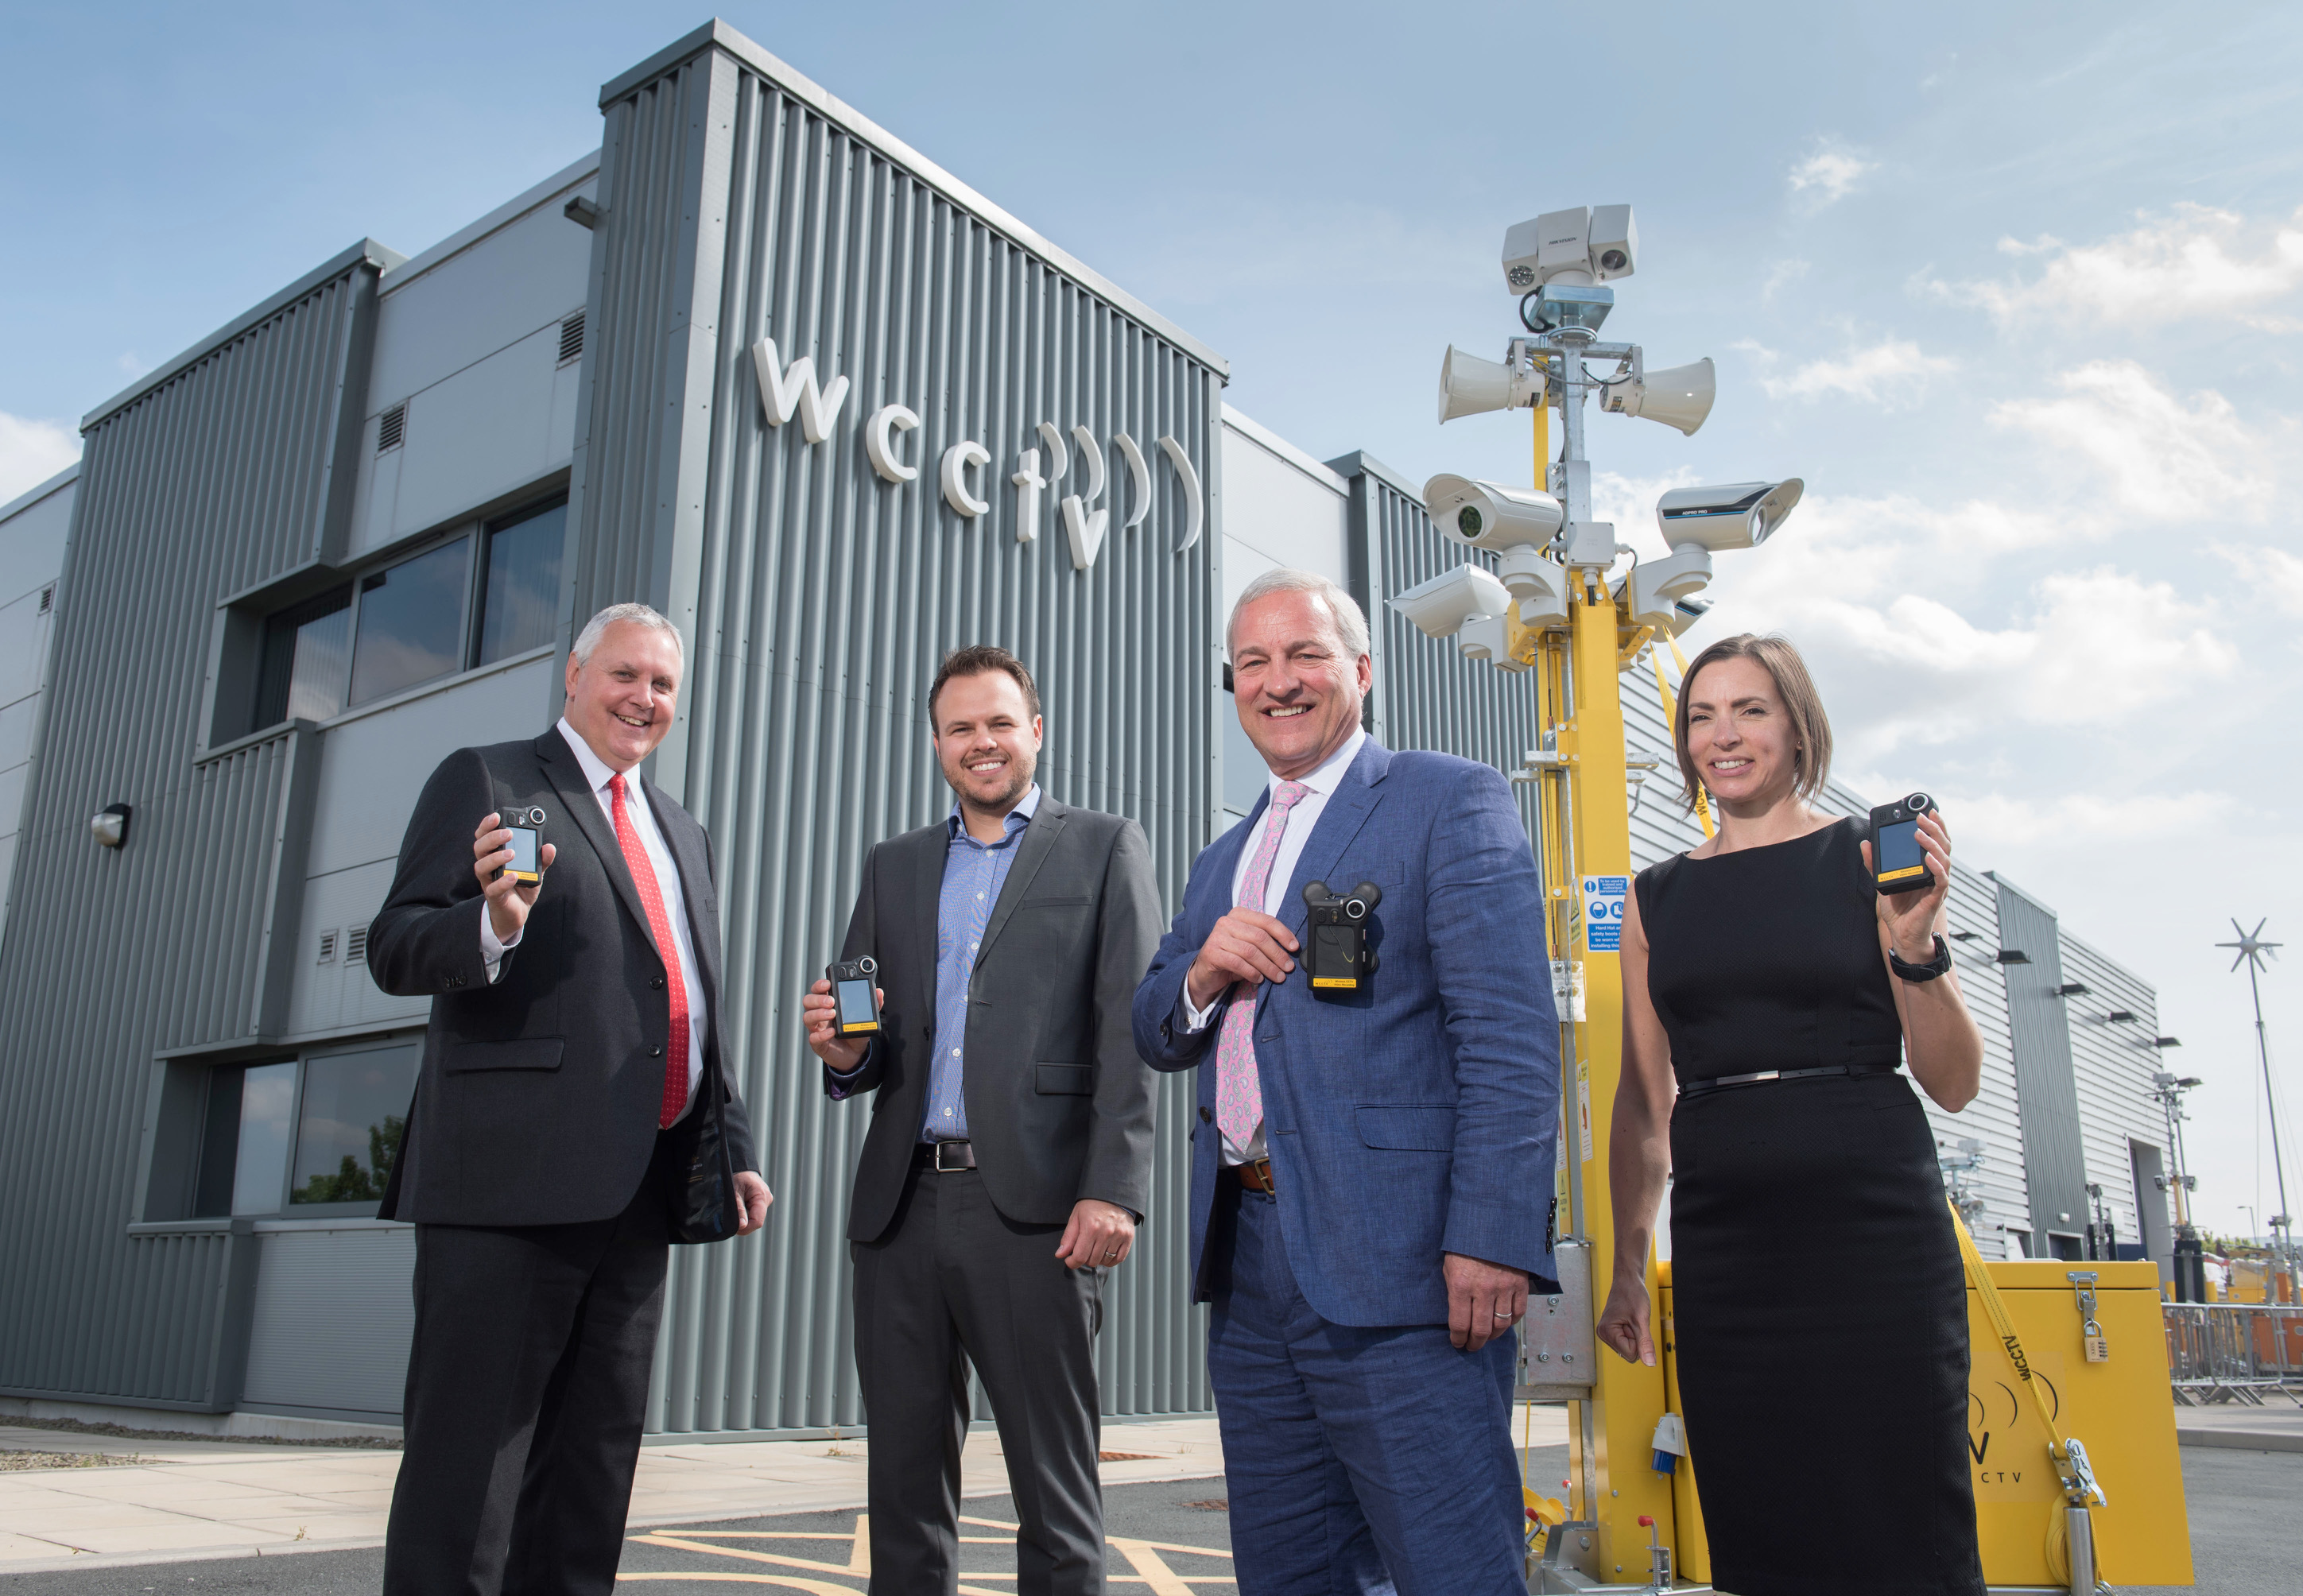 WCCTV Sets Sights On Growth With HSBC Funding